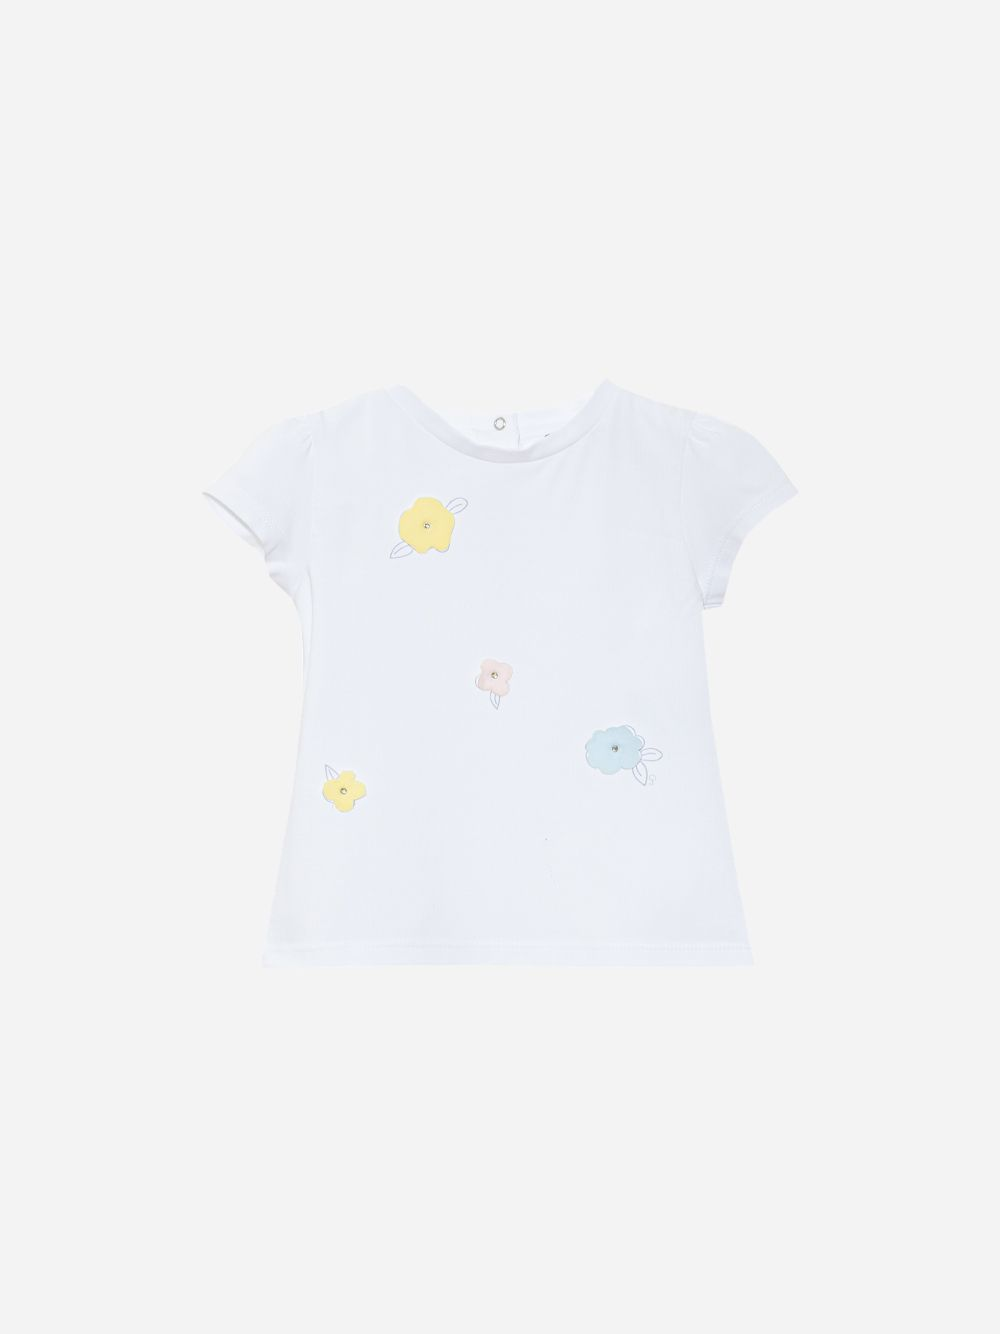 Patachou Jersey White T-Shirt